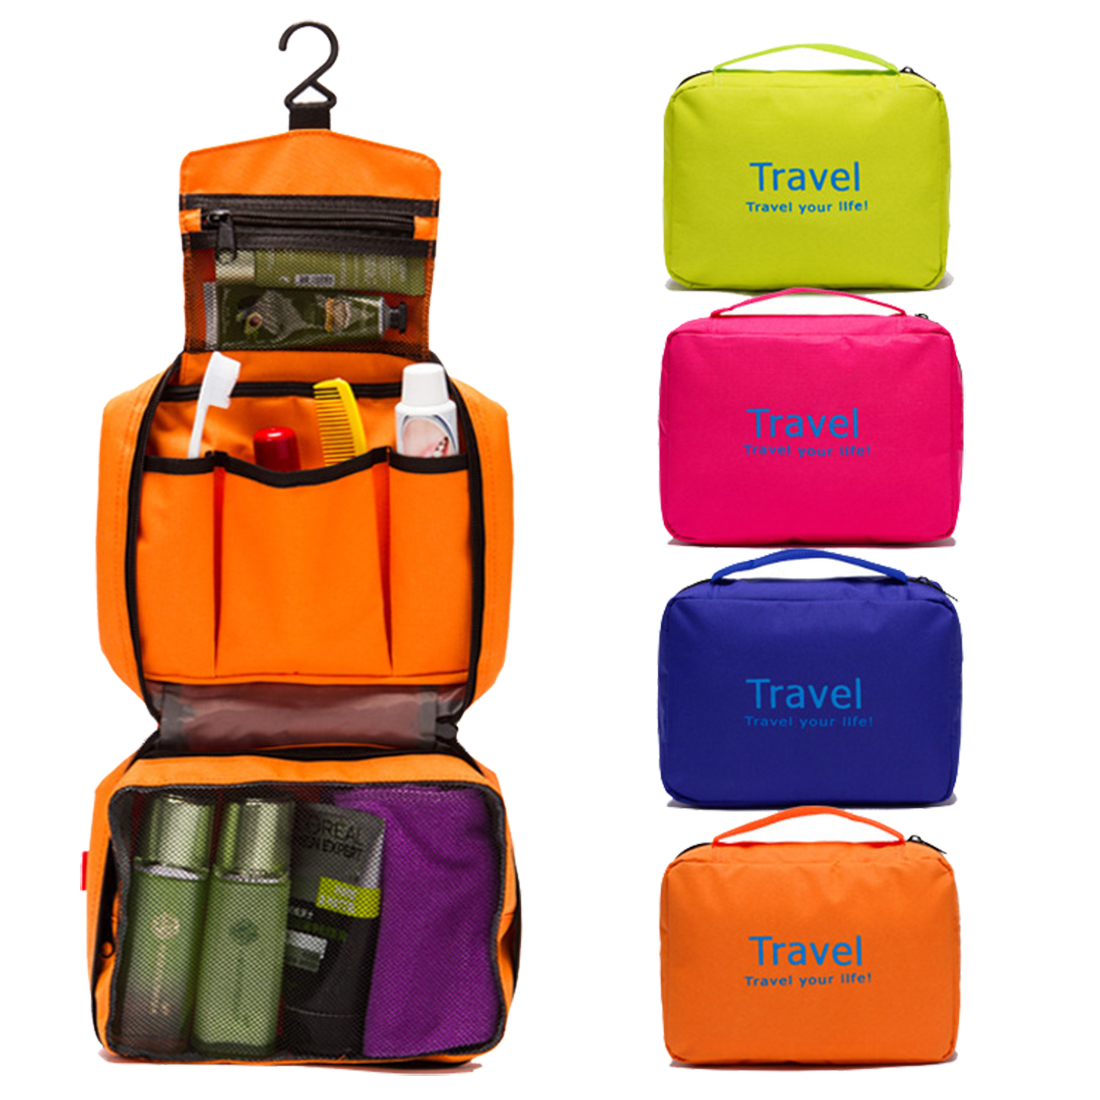 Portable Travel Bag Organizer Foldable Cosmetic Bag Luggage Compression Pouches Red Multifunctional Bag